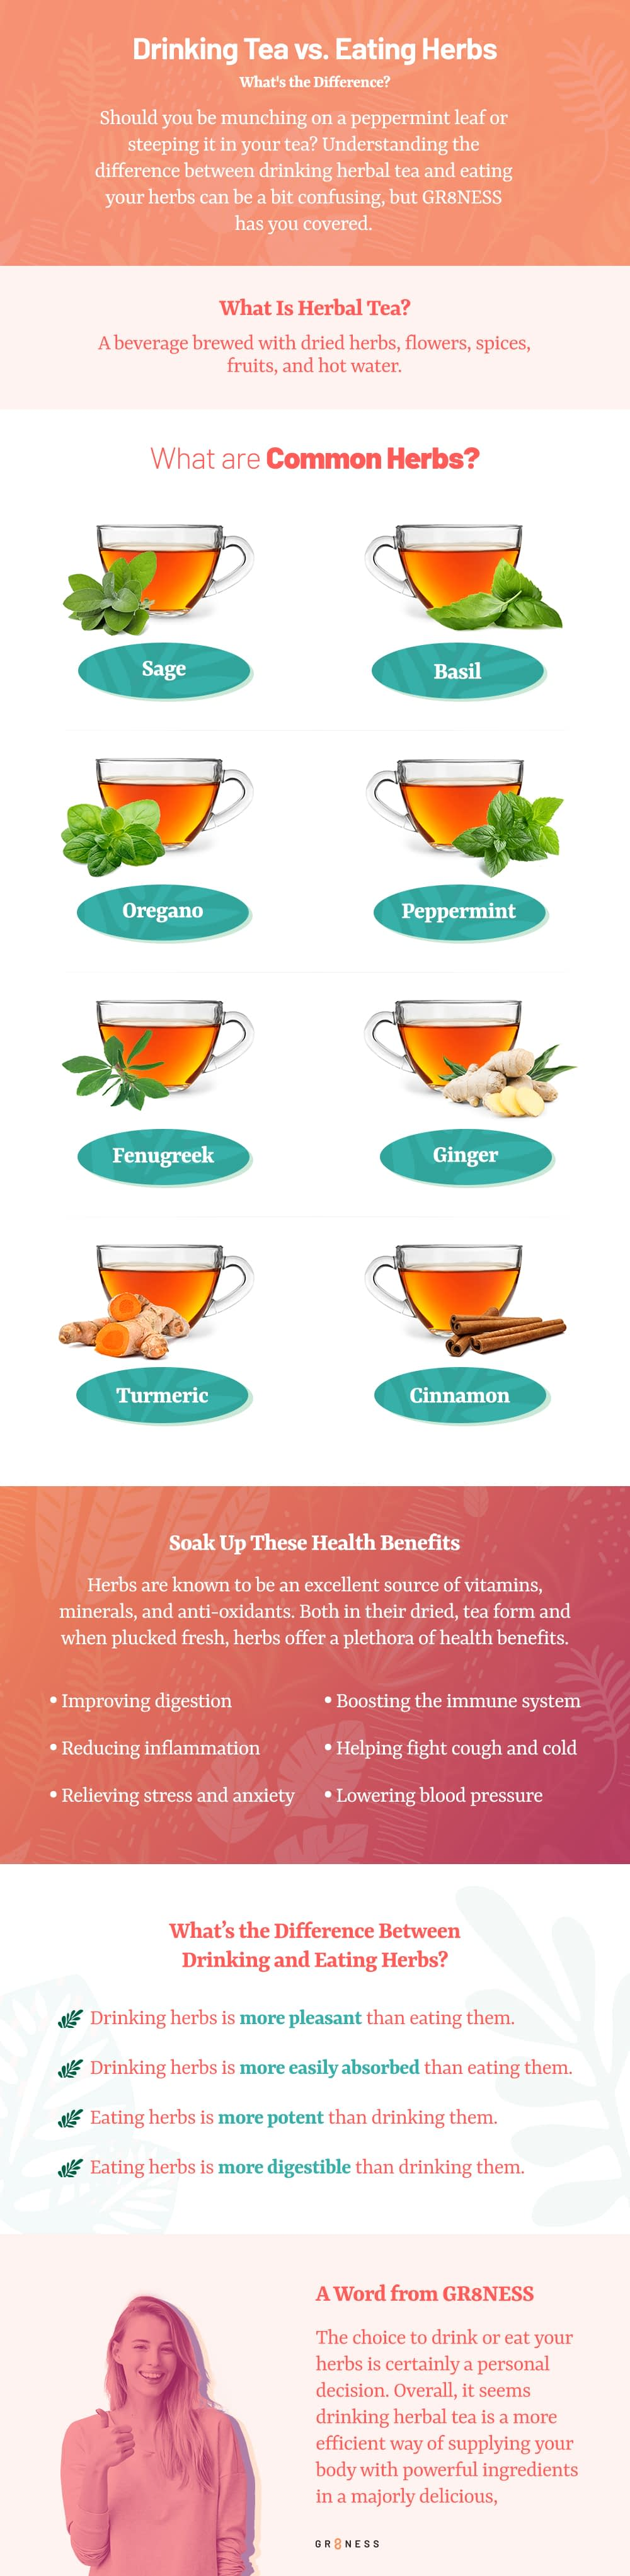 Infographic describing the difference between drinking tea and eating herbs